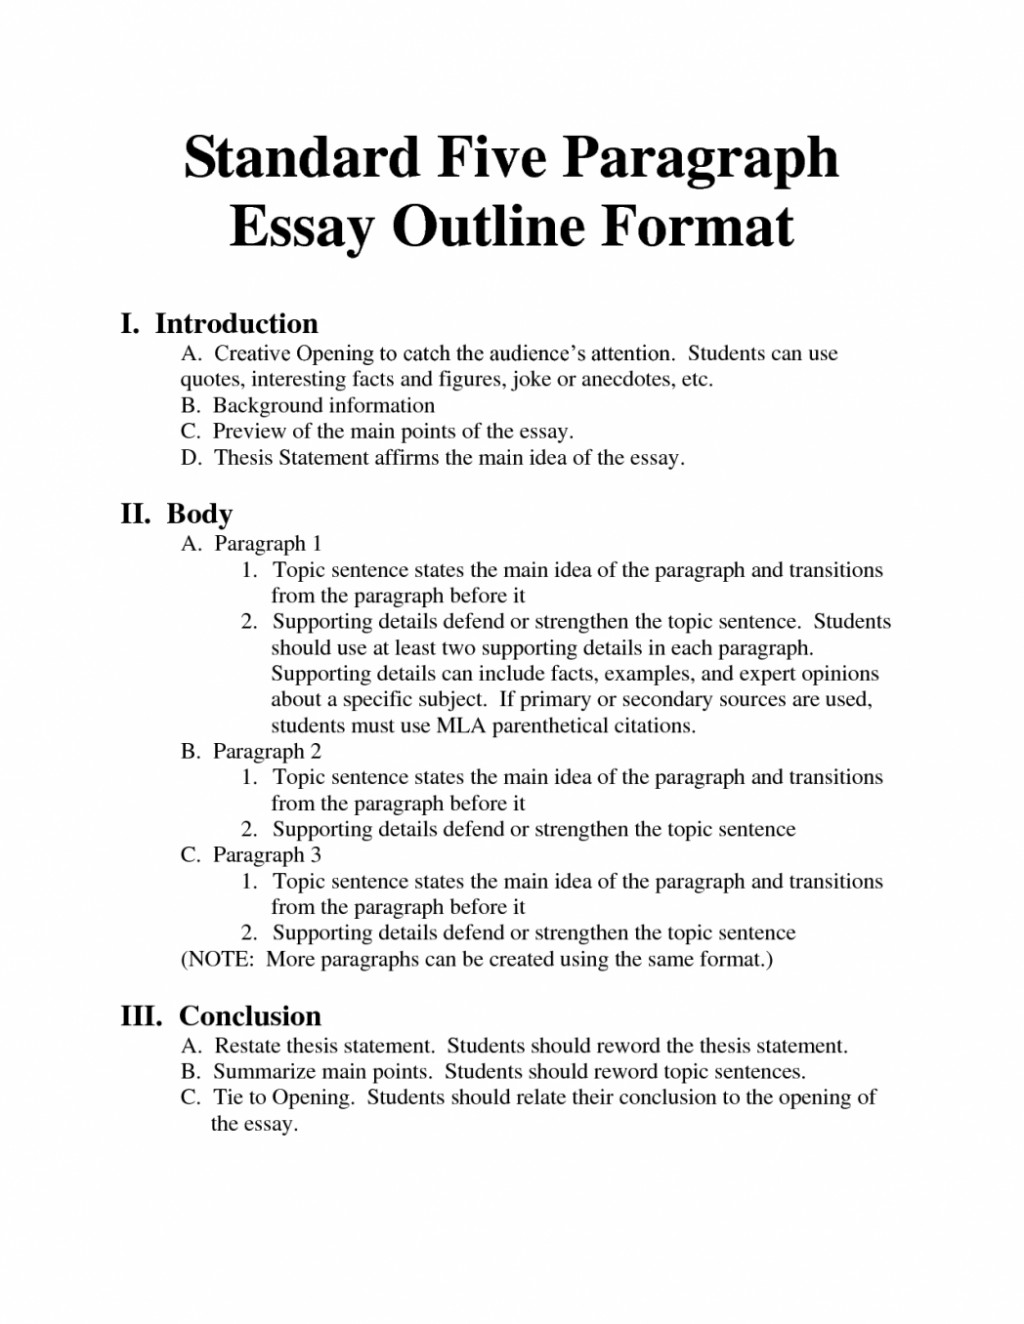 007 Sample Essay Format Example College The Cheapest Mba Critical Apa Formal Argumentative Tagalog Asa Scholarship Mla Best Outline Writing For Large